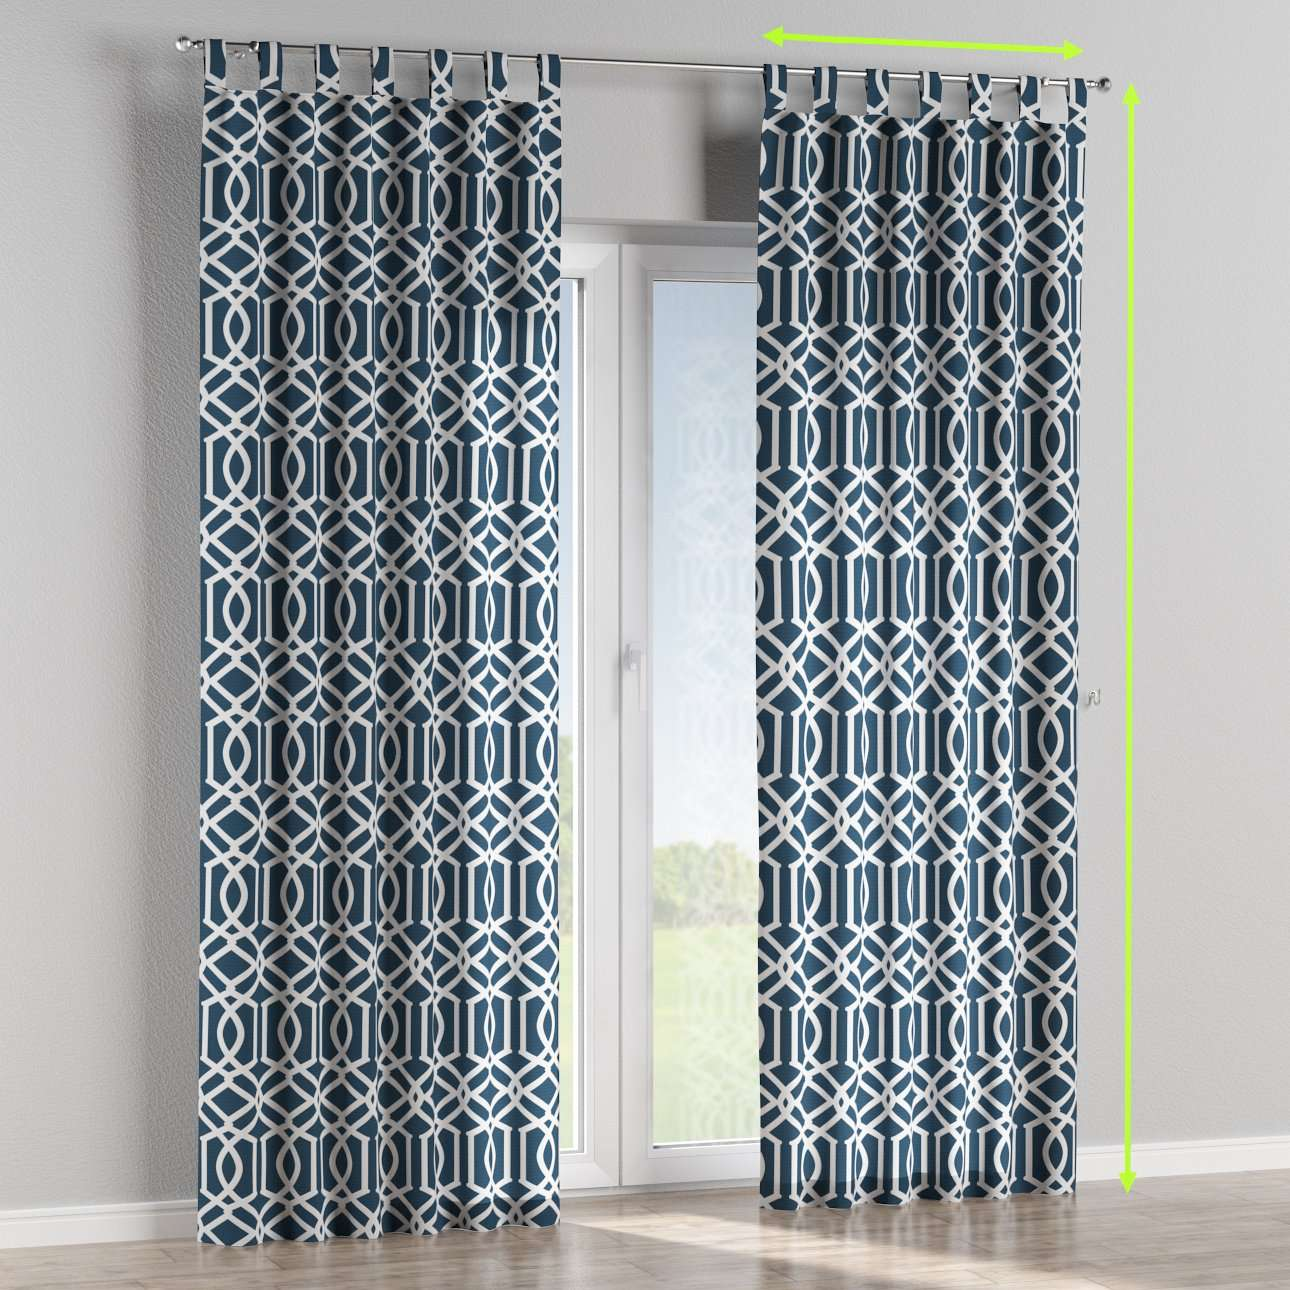 Tab top curtains in collection Comic Book & Geo Prints, fabric: 135-10